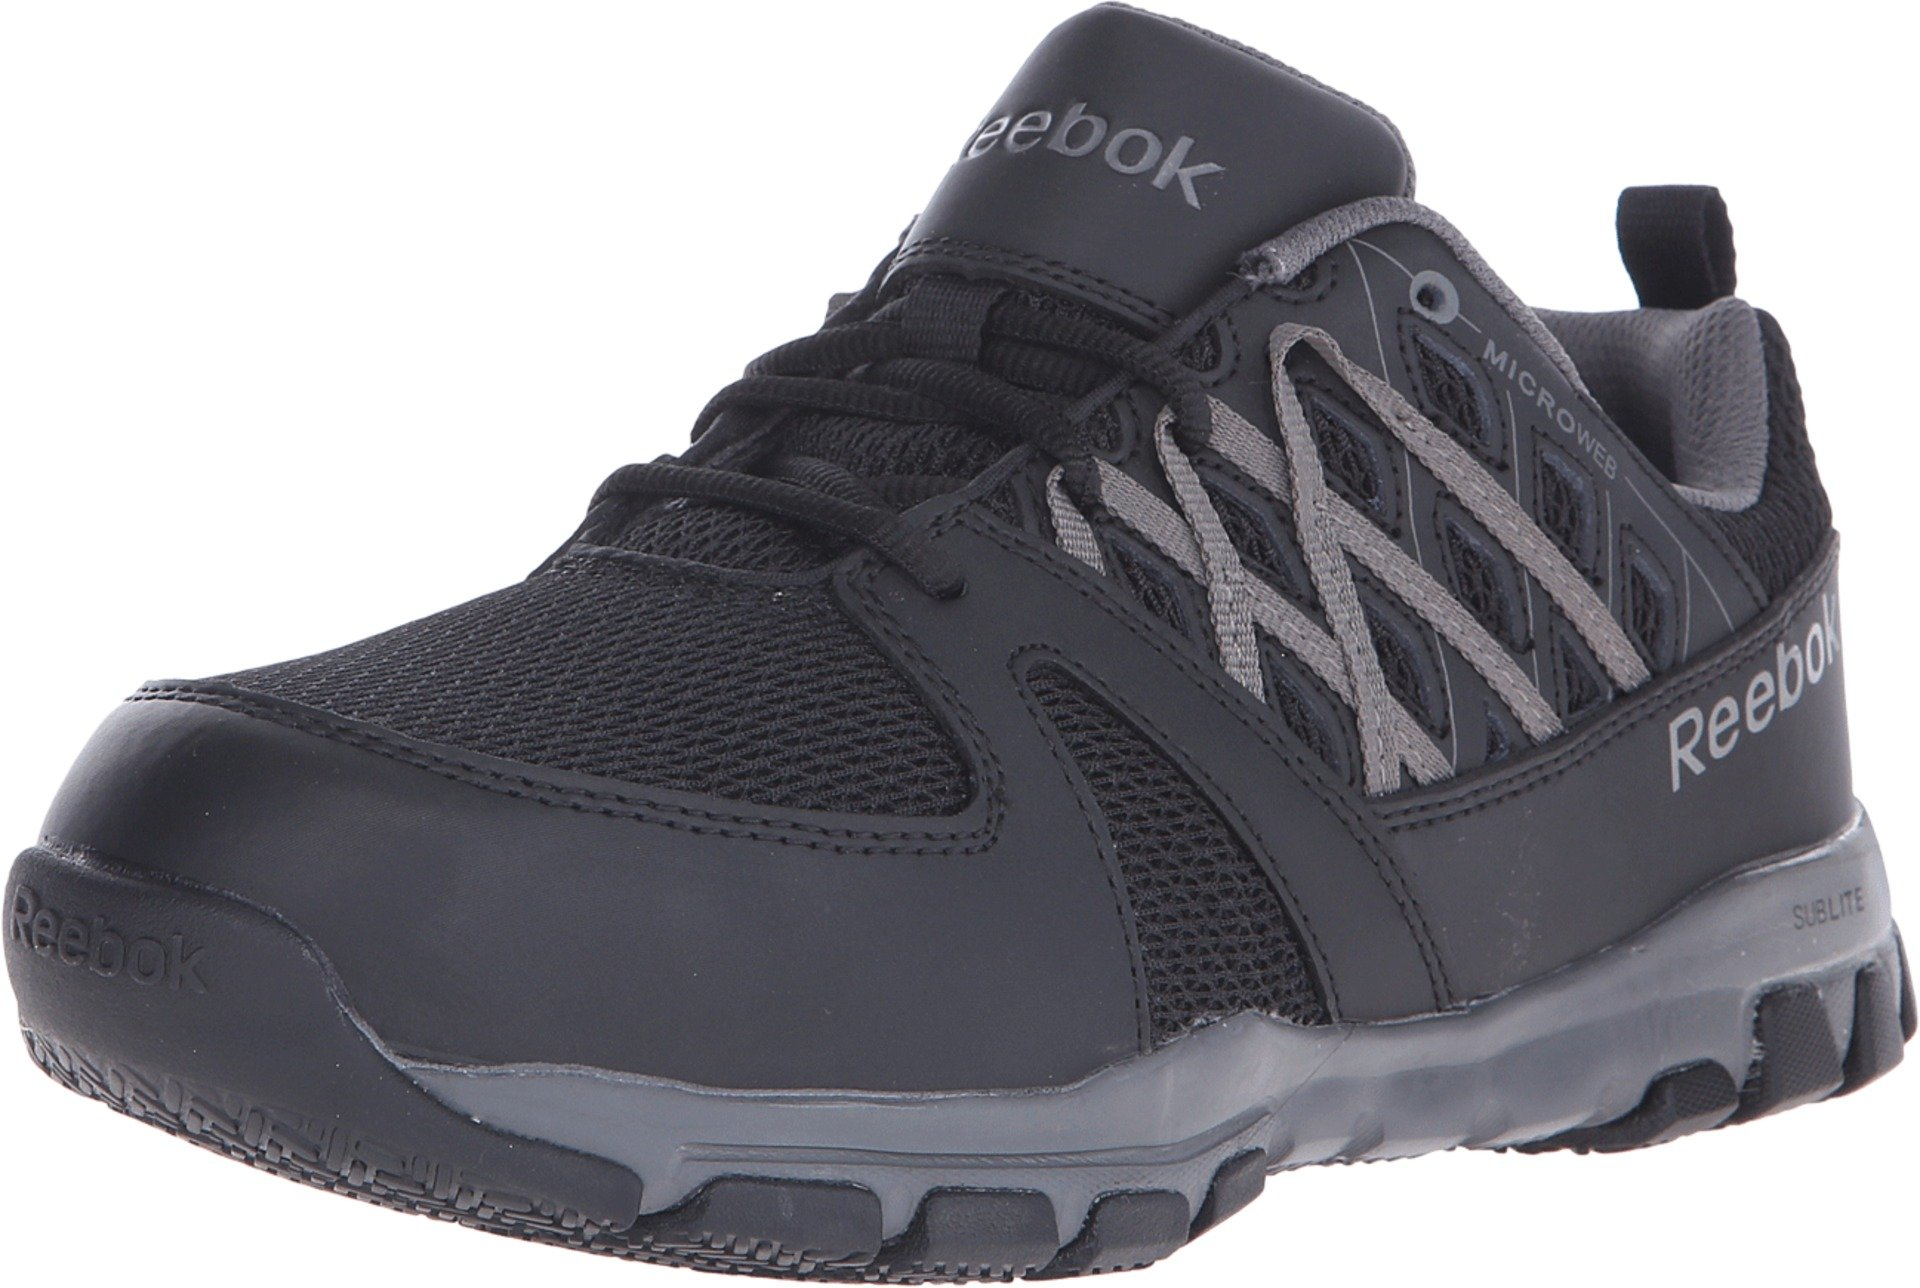 Reebok Work Men's Sublite RB4016 Work Shoe, Black, 9 W US by Reebok Work